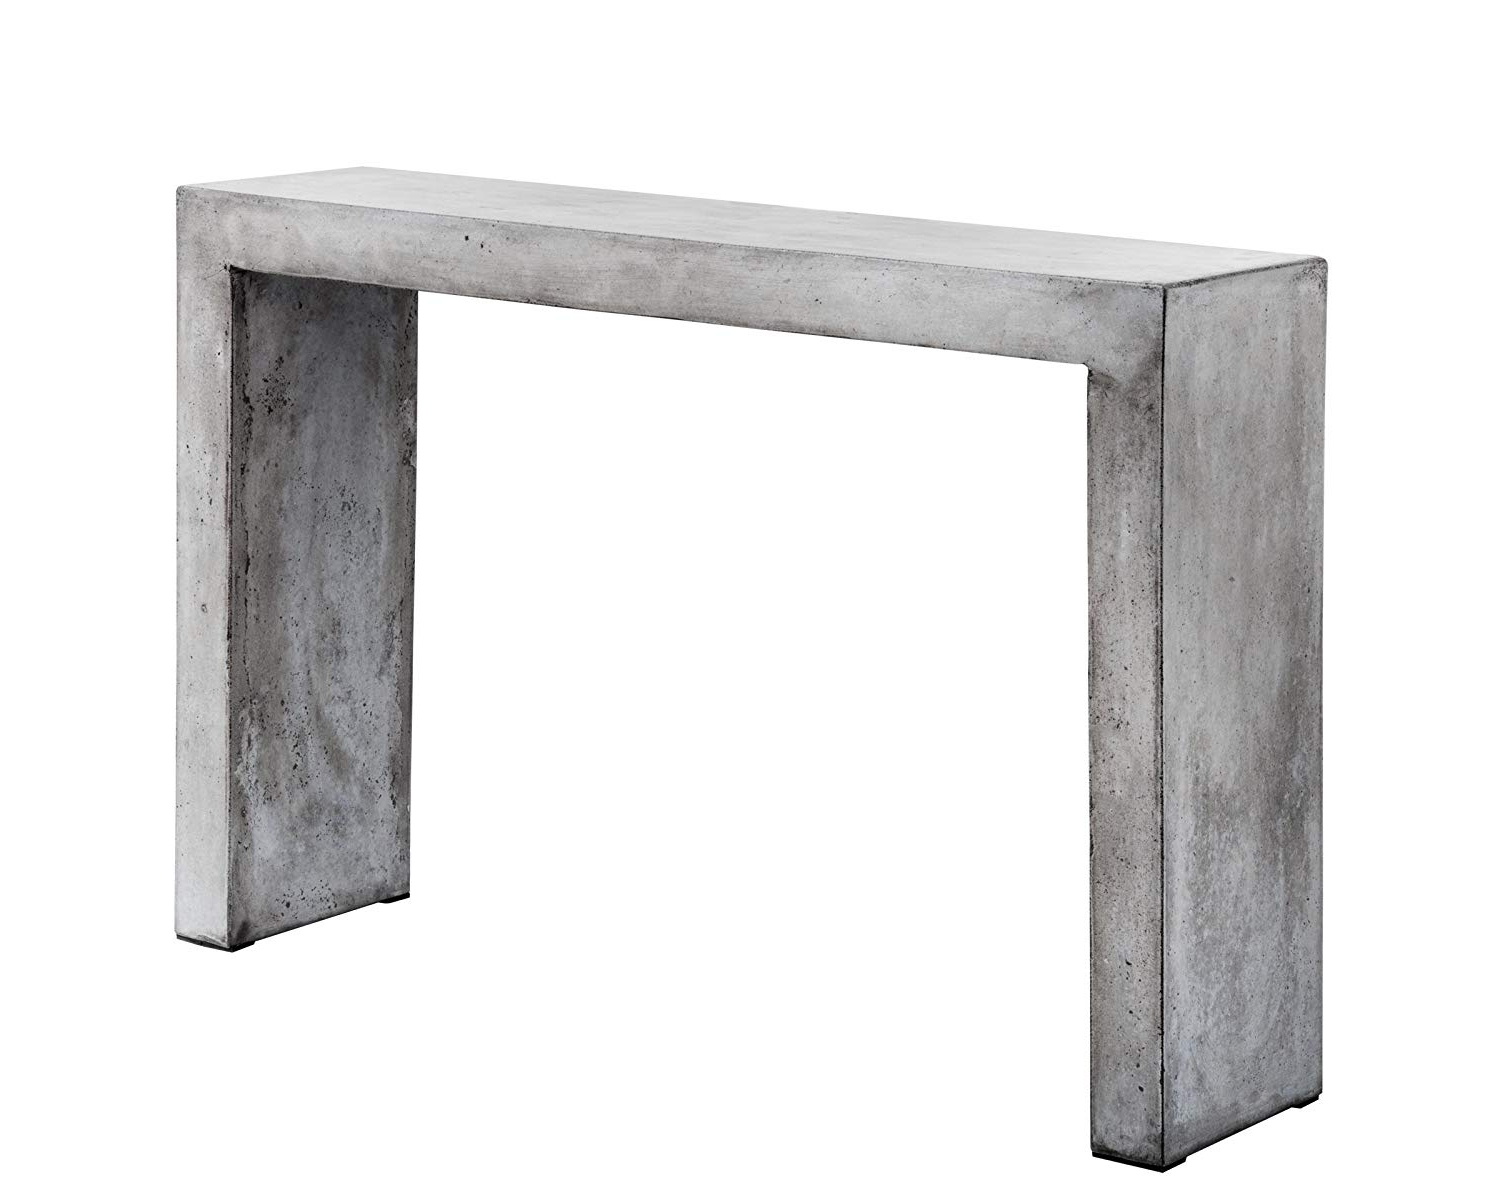 Parsons Concrete Top & Stainless Steel Base 48X16 Console Tables With Regard To Best And Newest Amazon: Sunpan Modern Axle Console Table, Grey: Kitchen & Dining (View 14 of 20)